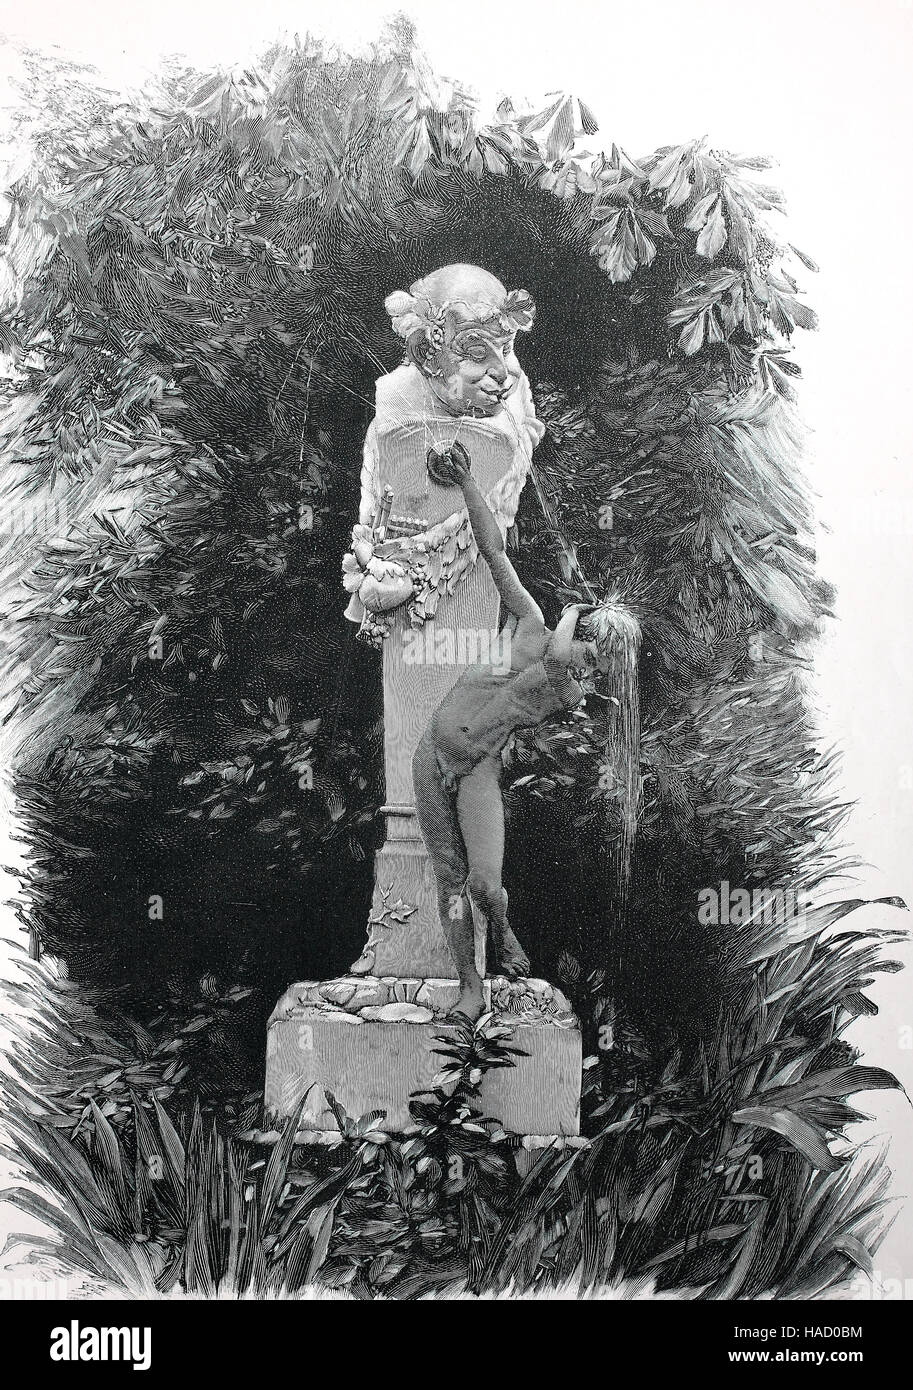 Fountain figures, illustration published in 1880 - Stock Image